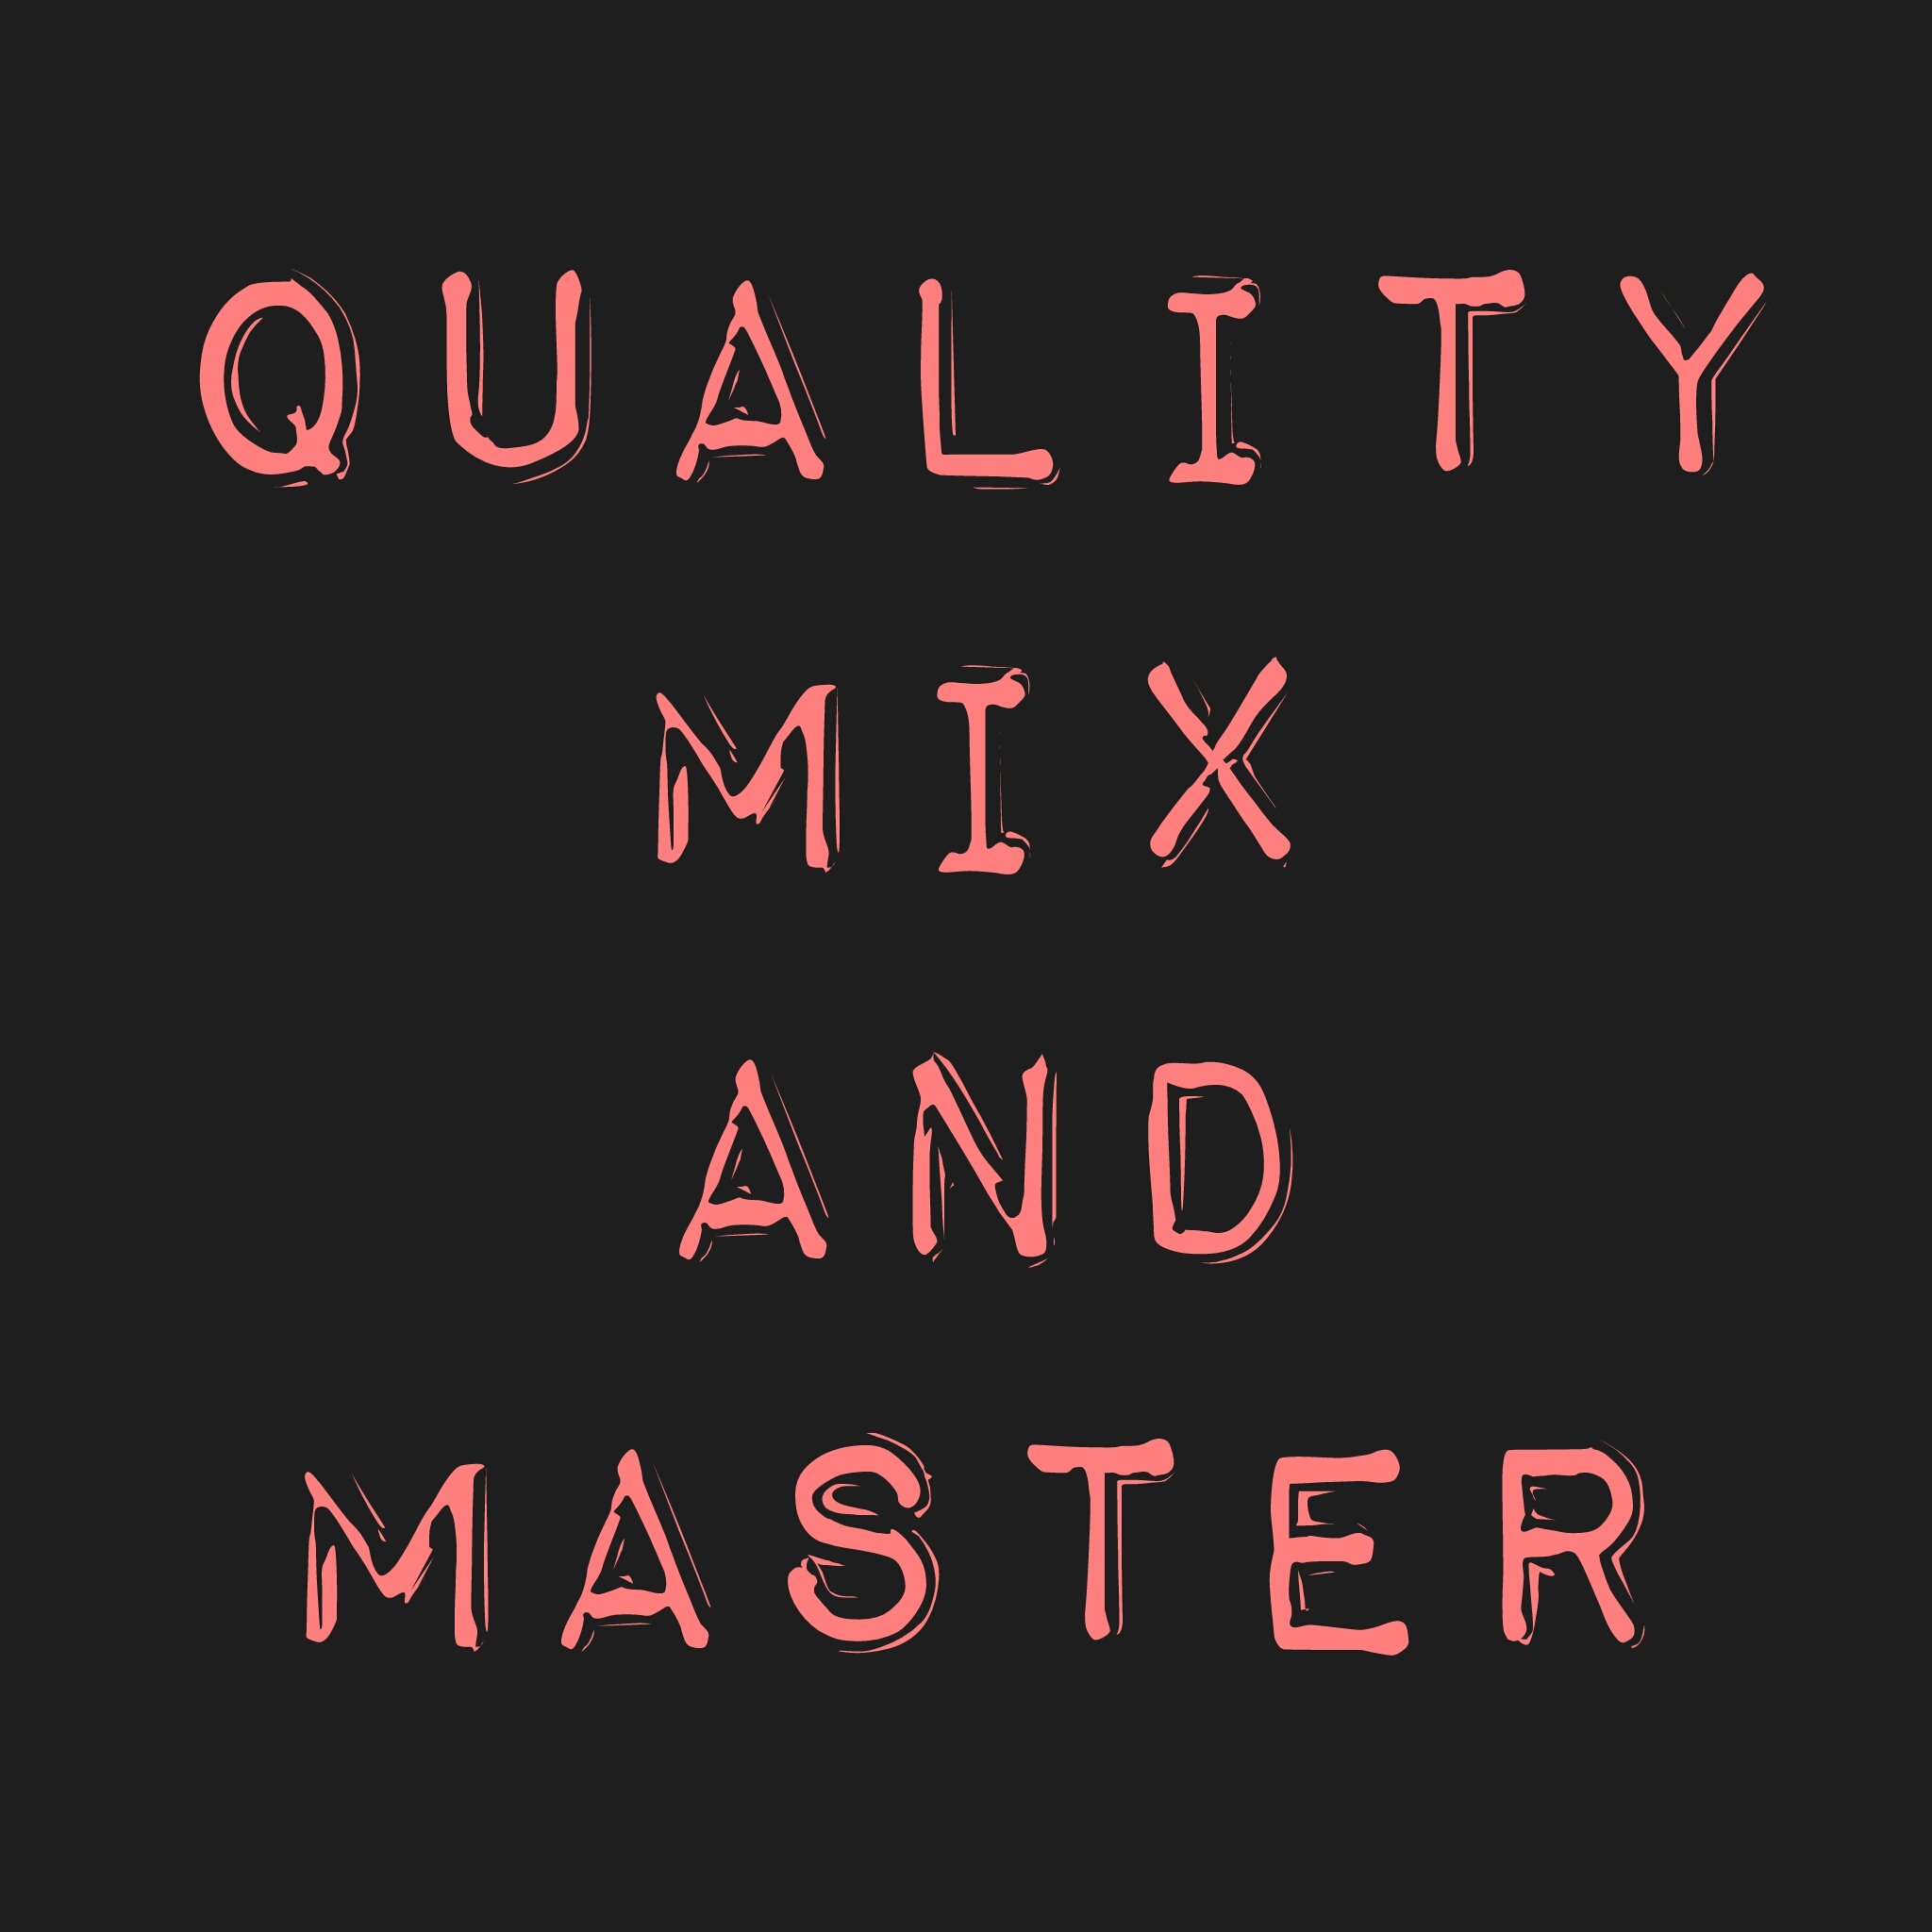 I MIX AND MASTER YOUR SONG